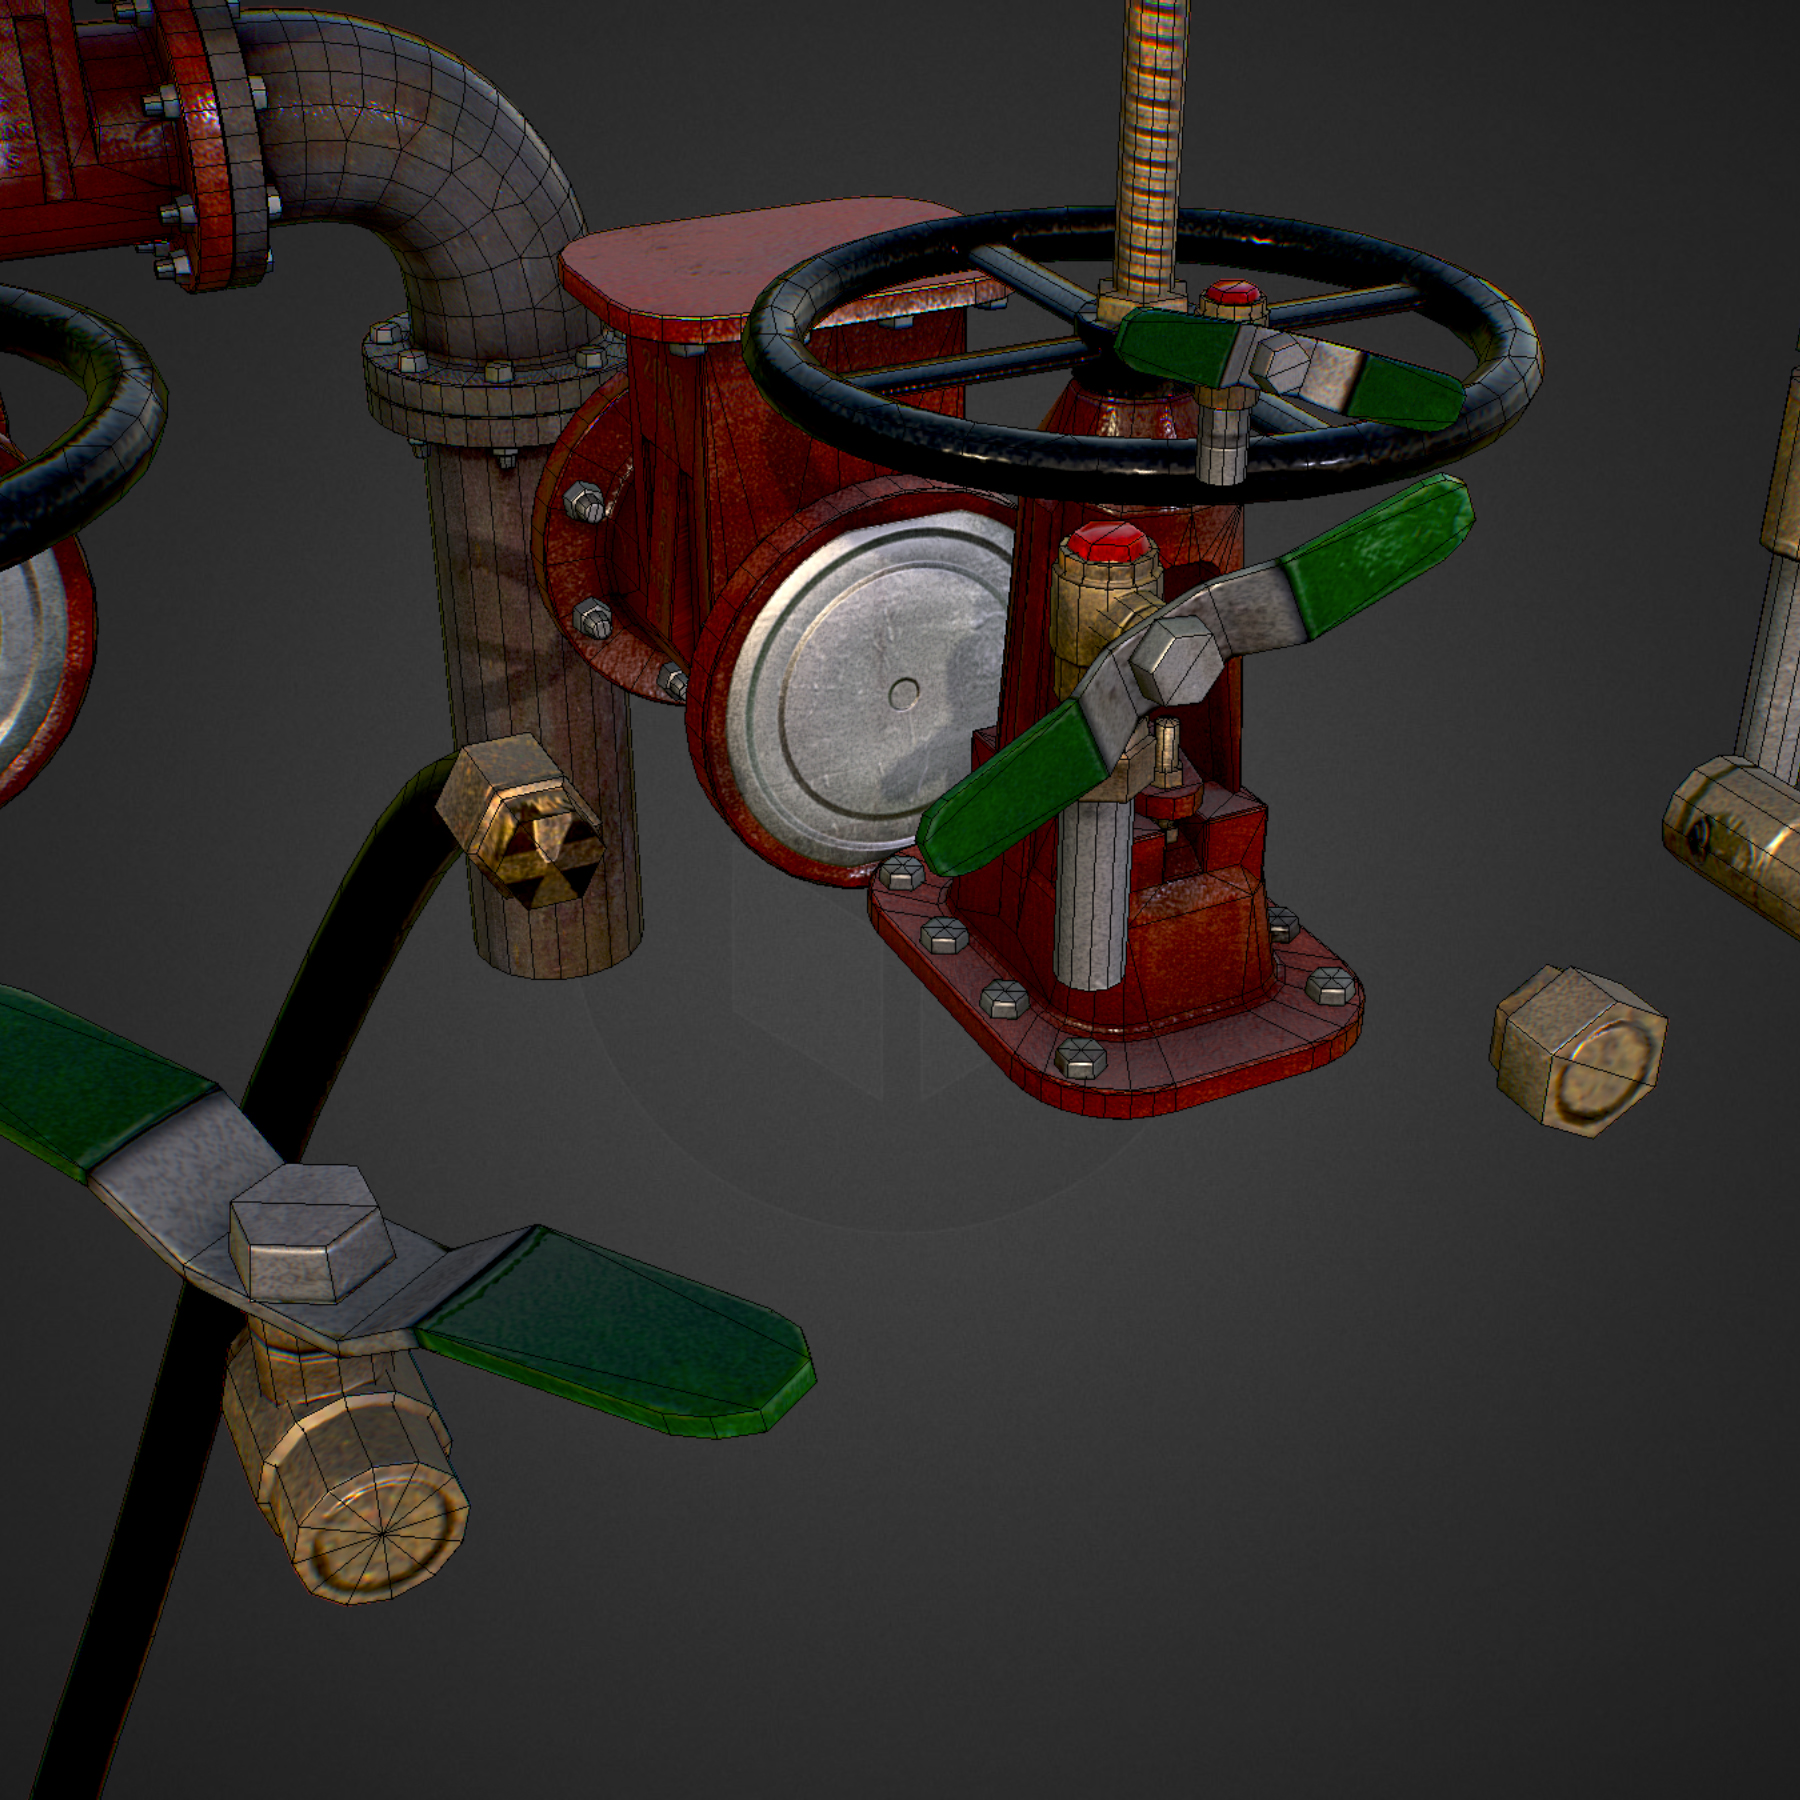 low poly game backflow water pipe constructor 3d model max  fbx ma mb tga targa icb vda vst pix obj 272490